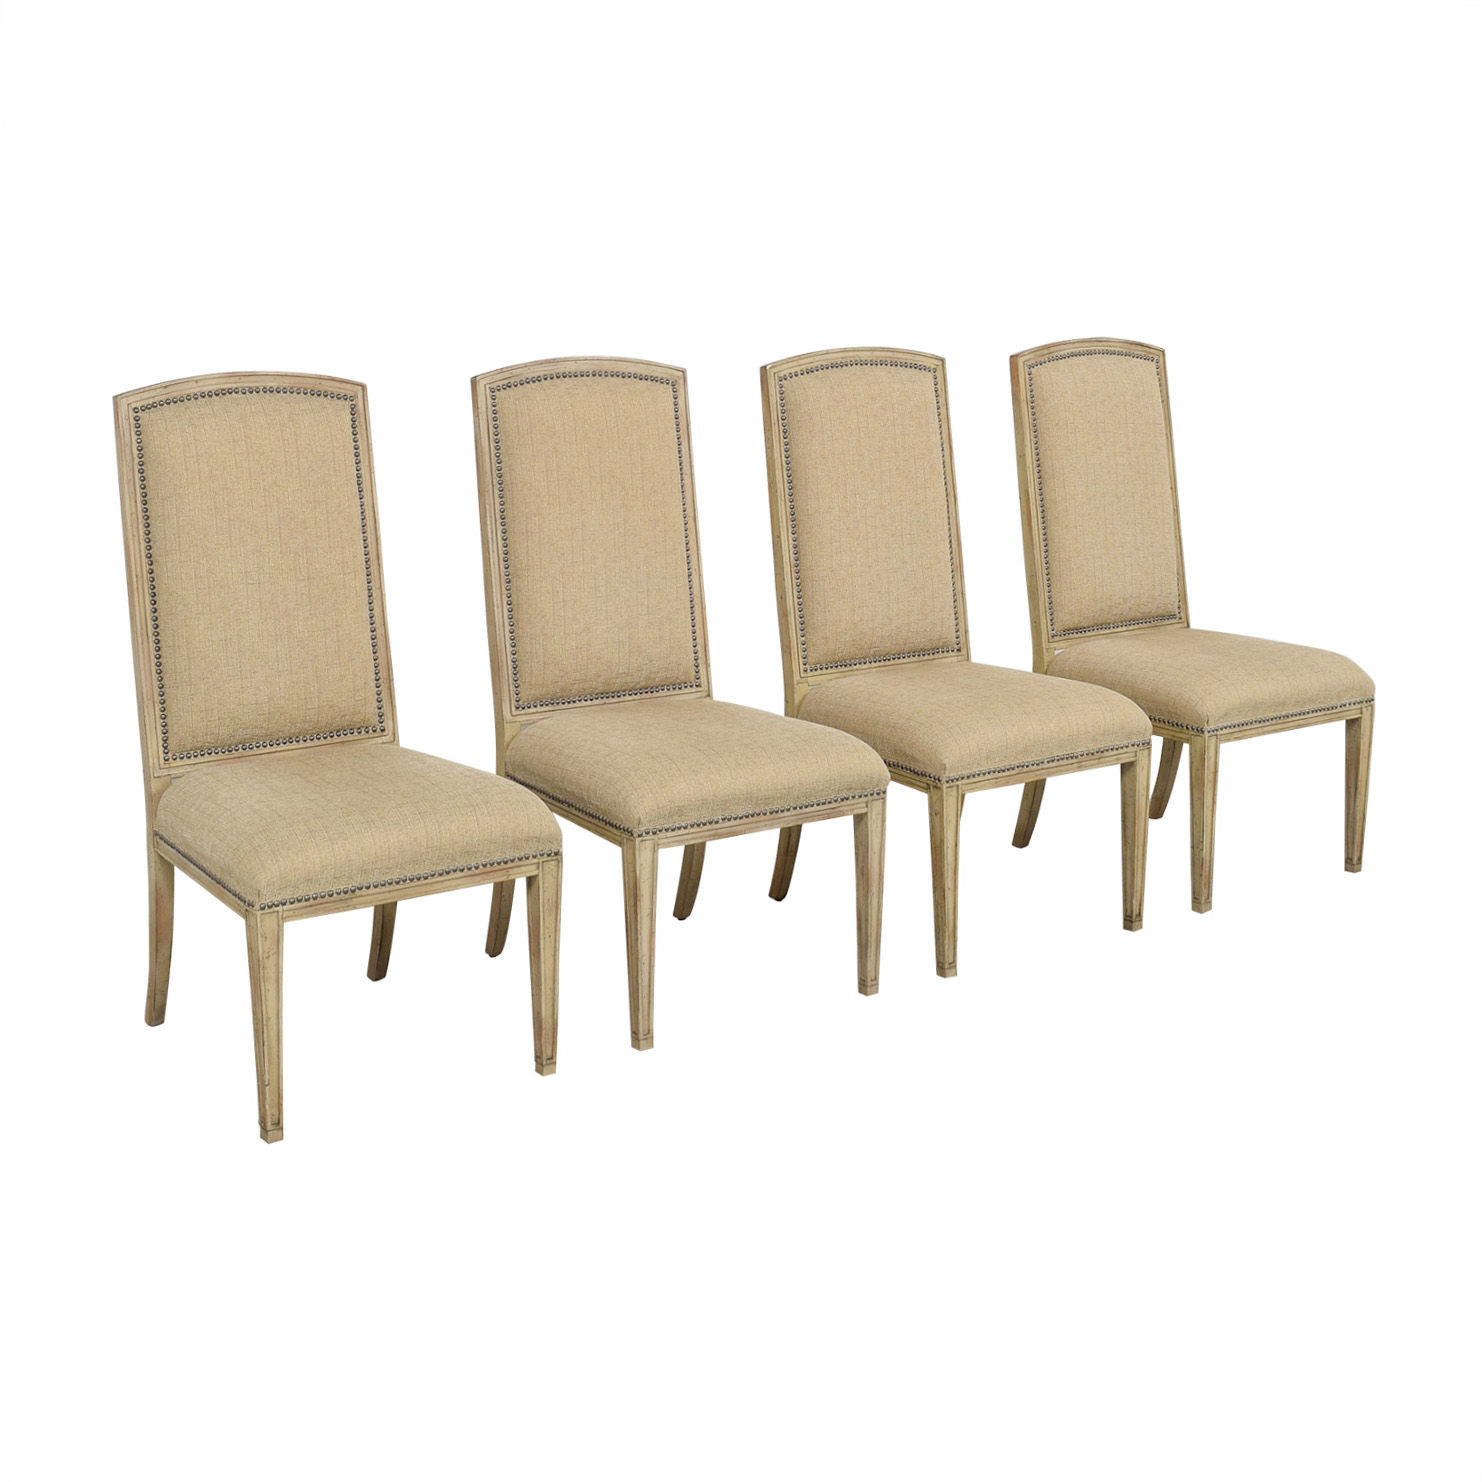 Hooker Furniture Hooker Furniture Sanctuary Dining Chairs price